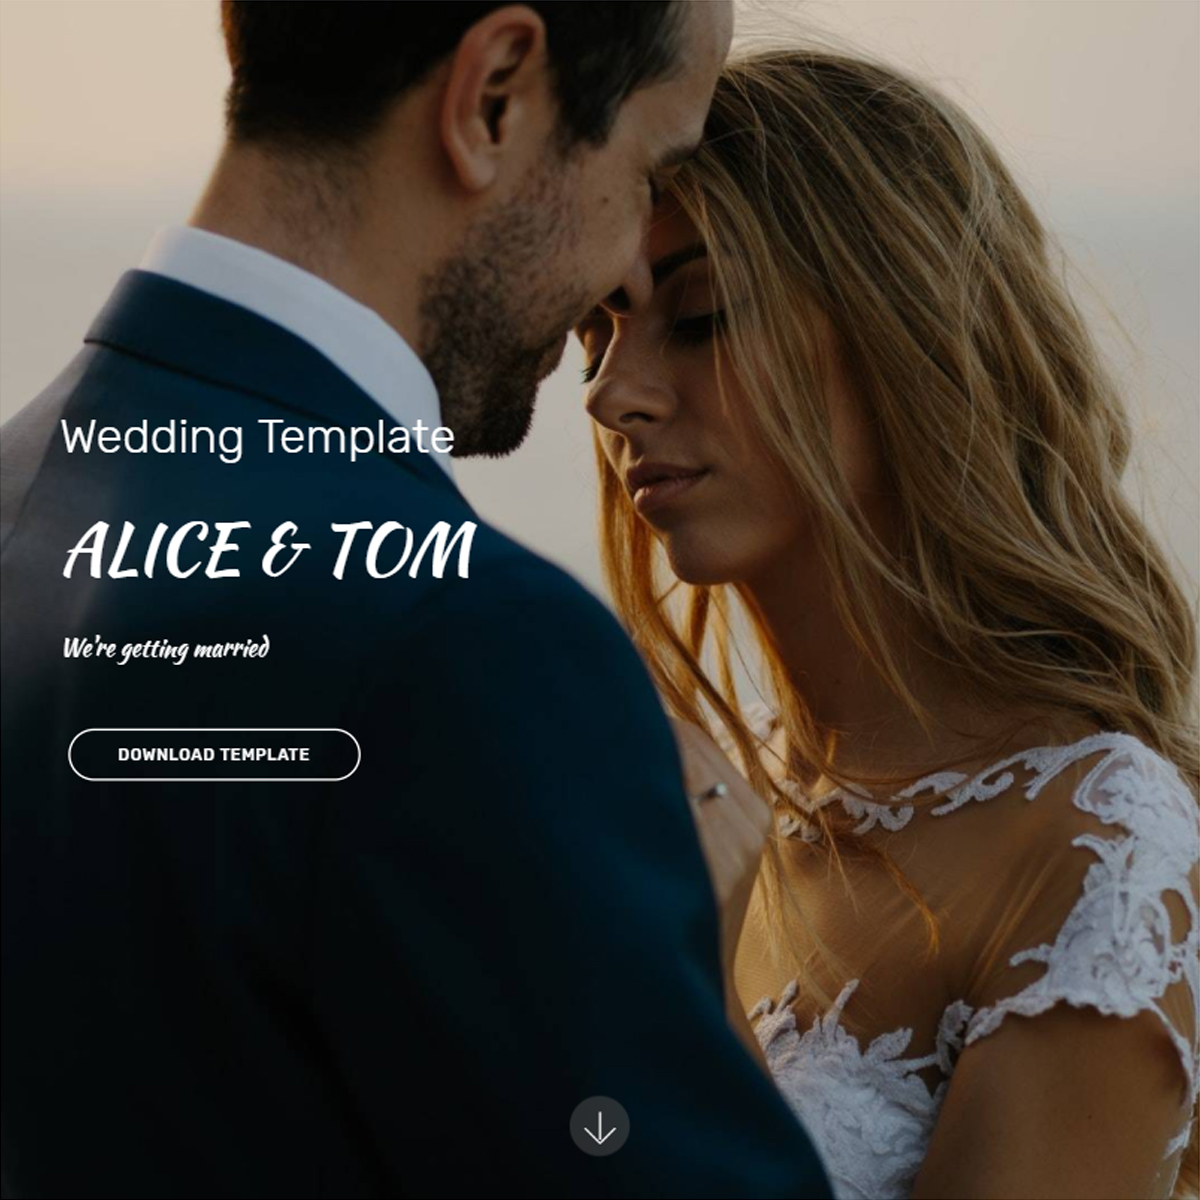 CSS3 Bootstrap Wedding Templates